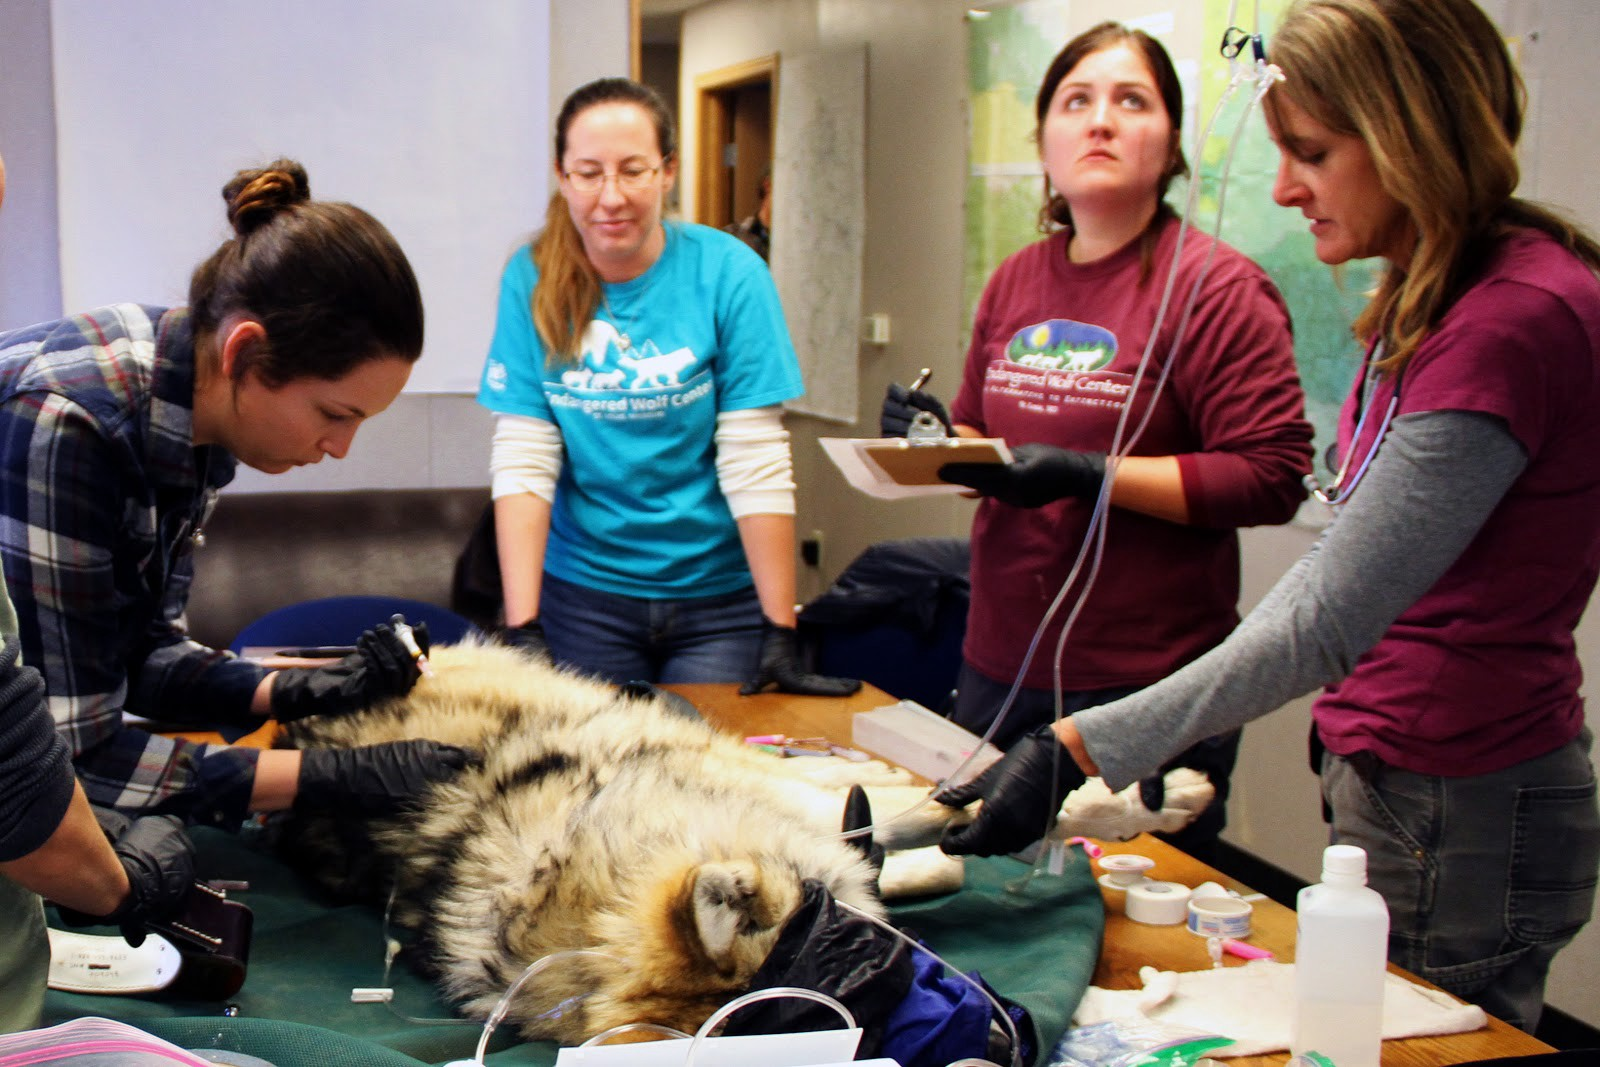 Four biologists and veterinarians work on a sedated wolf on a table, taking samples and measurements.